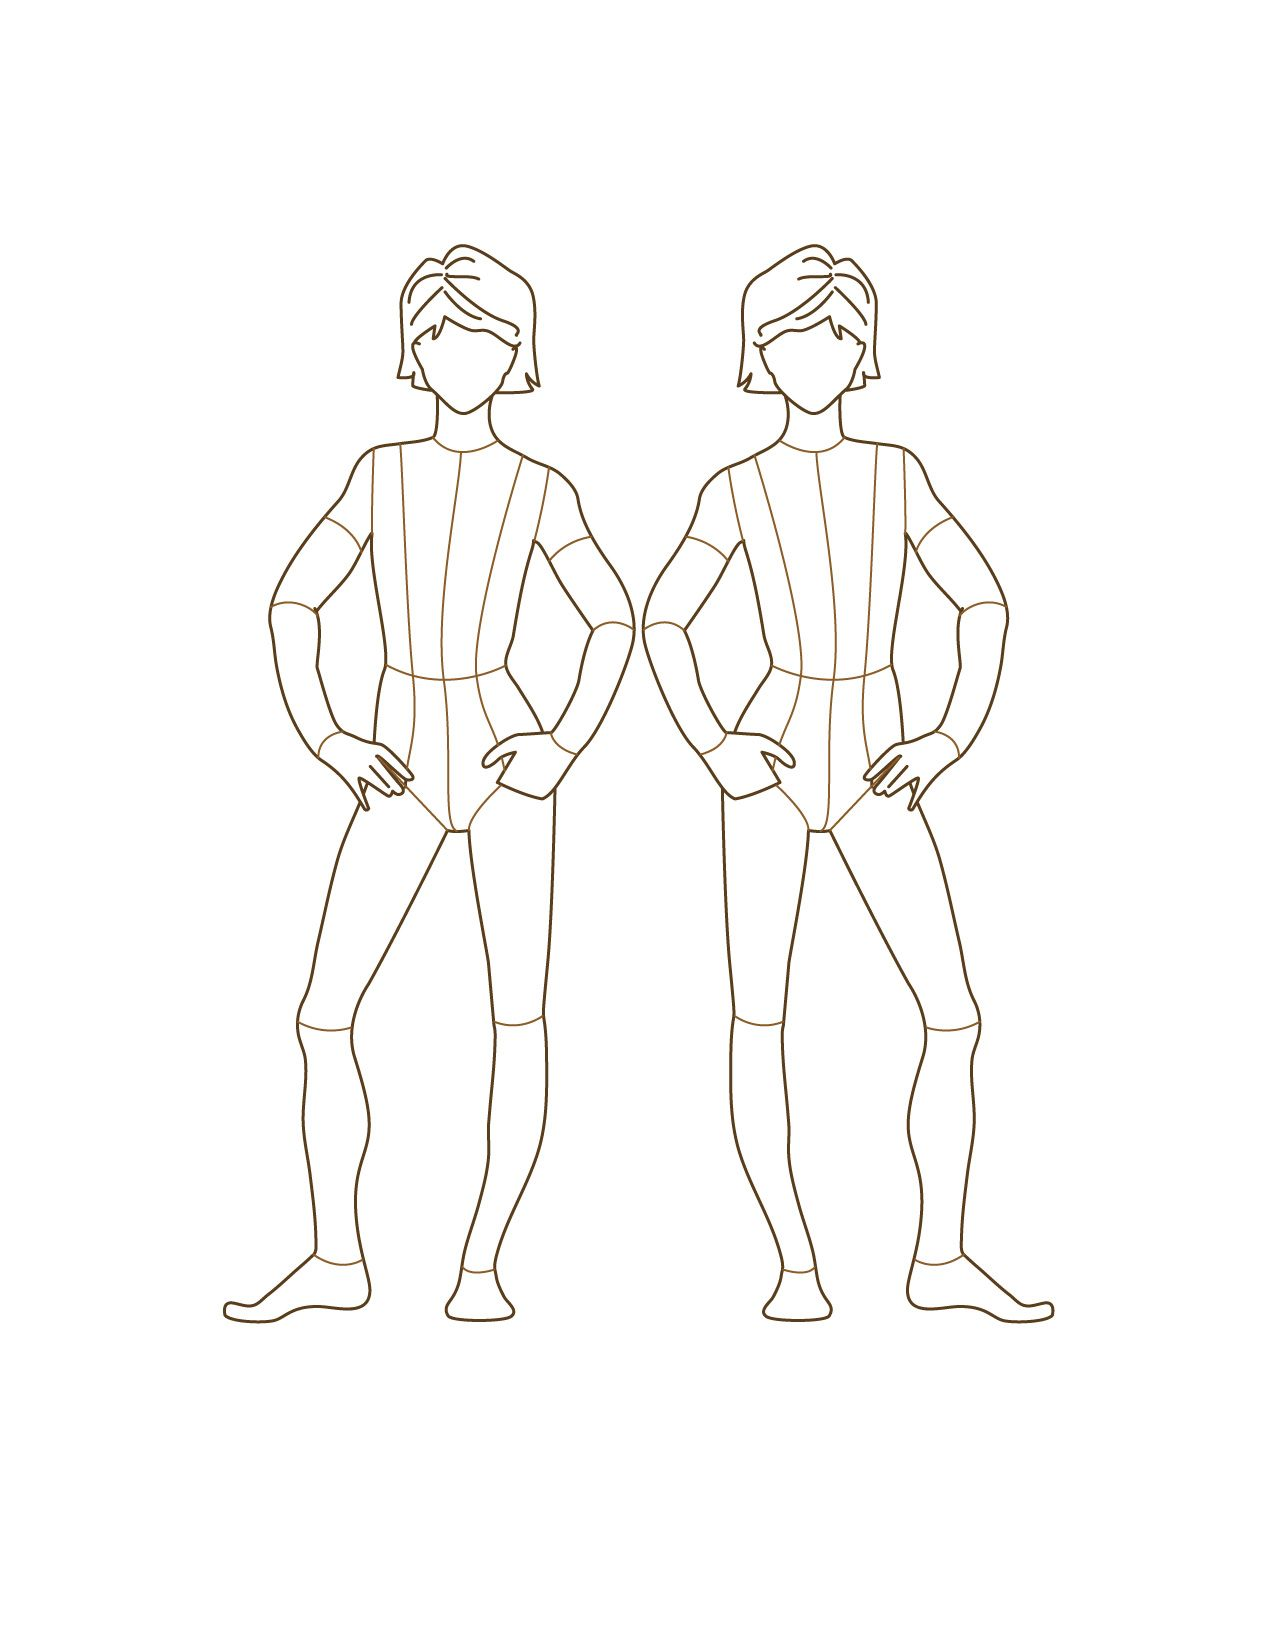 fashion designer drawing template - google image result for